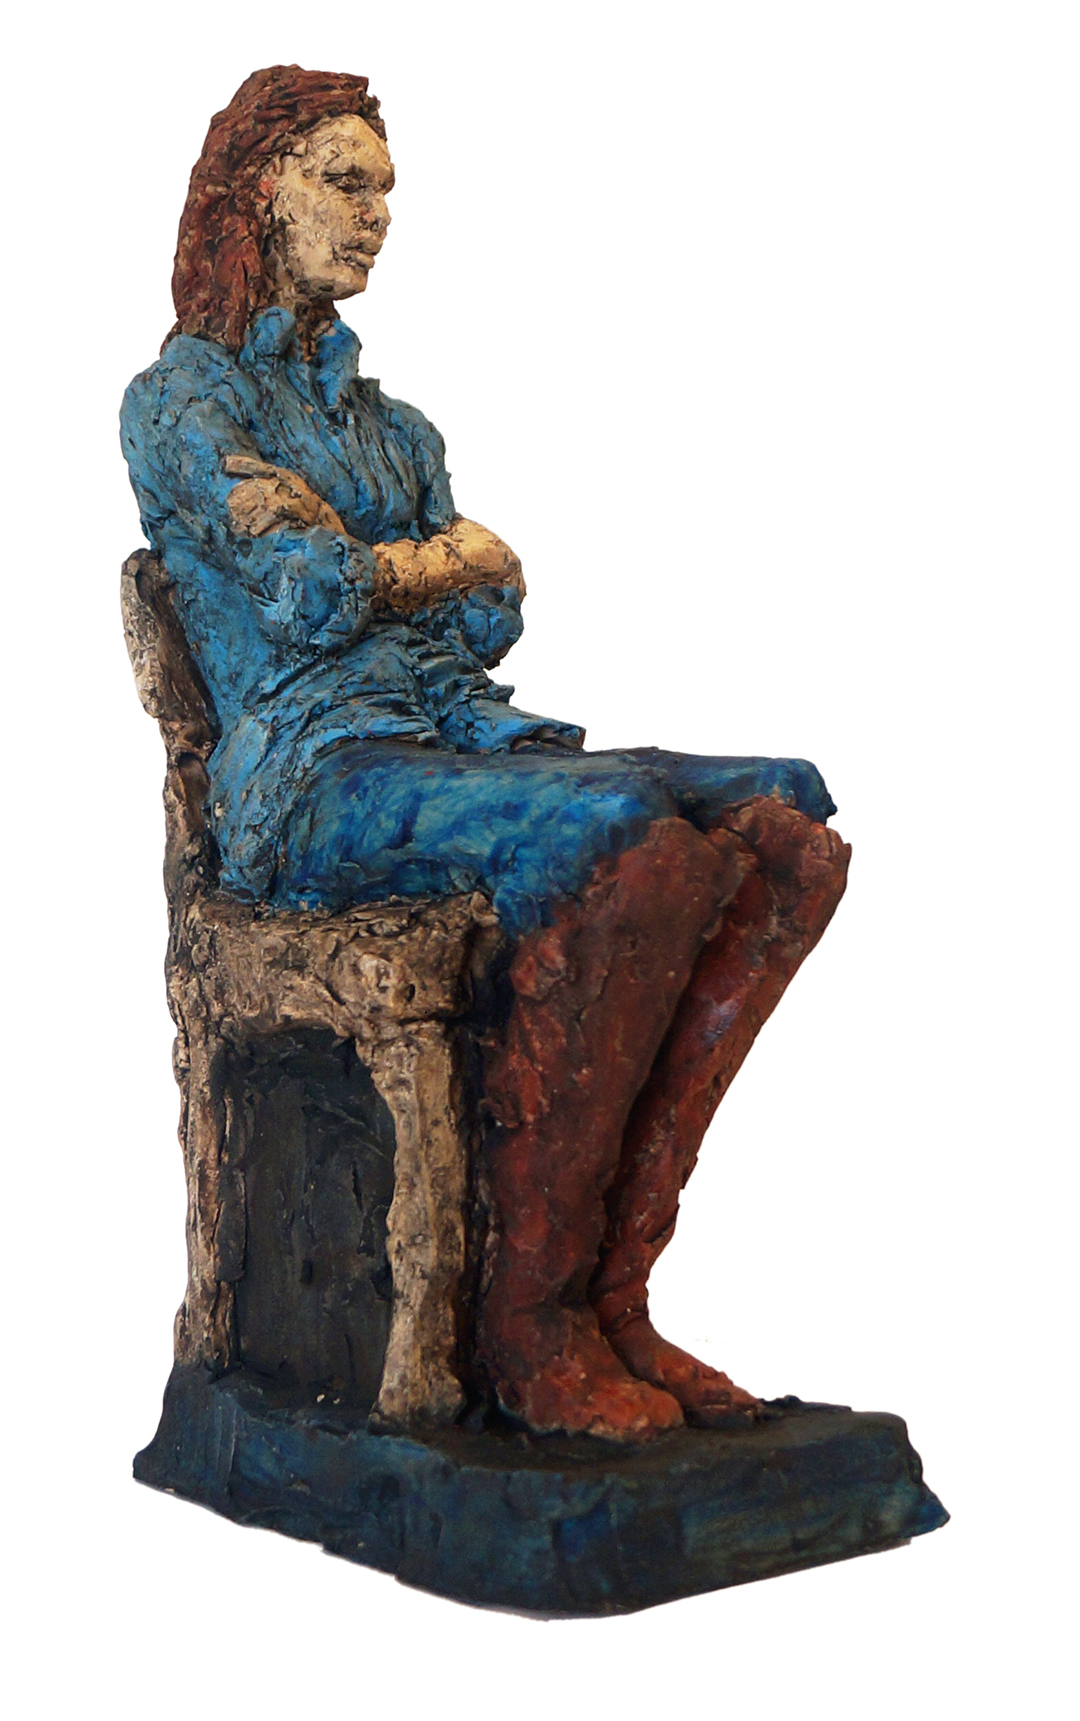 1-day figure sketch of Tanja Jess Miller Fired clay sculpture, 31 cm x 10 cm x 16 cm, 2018